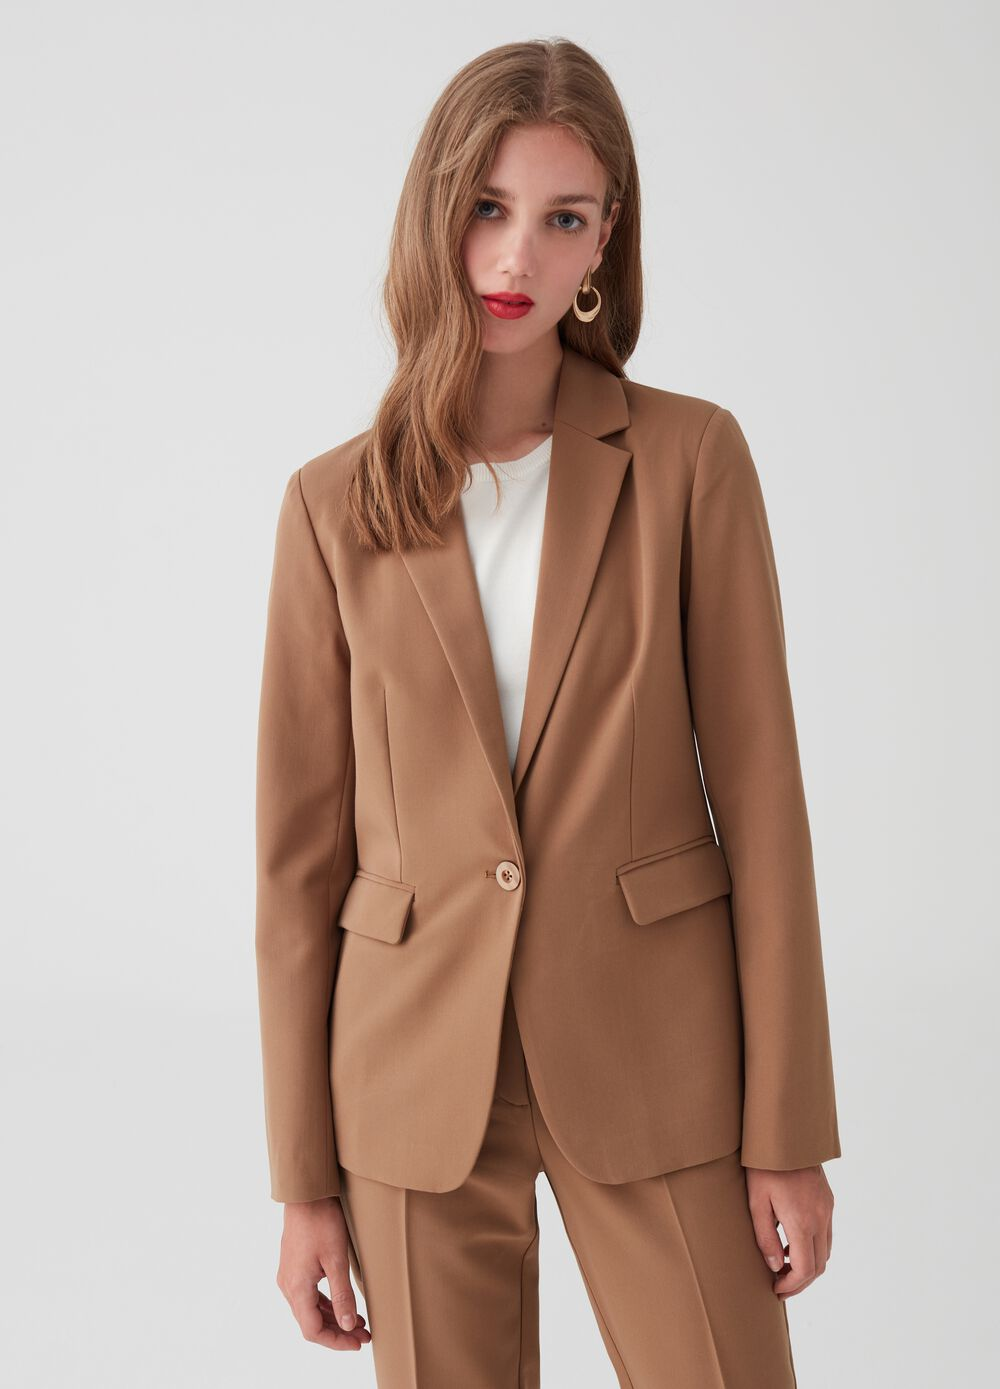 Solid colour blazer with lapels and pockets